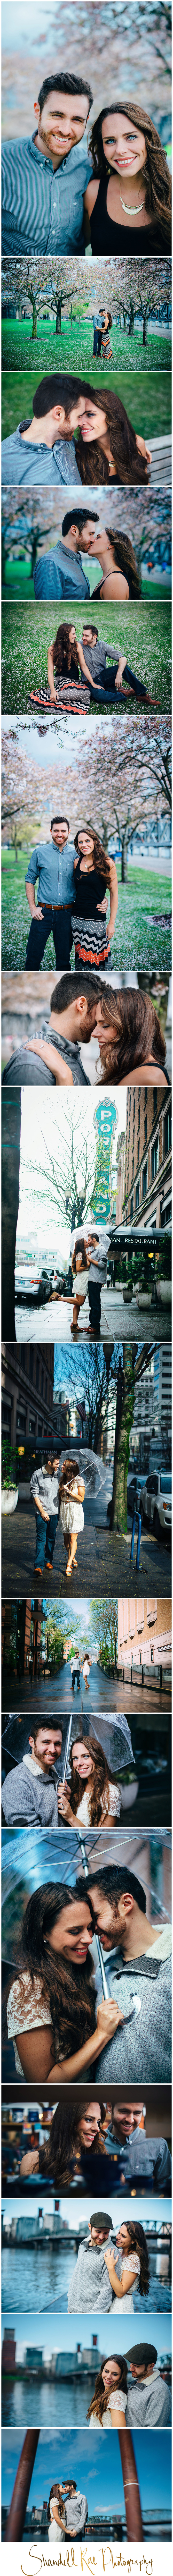 portland engagement shoot